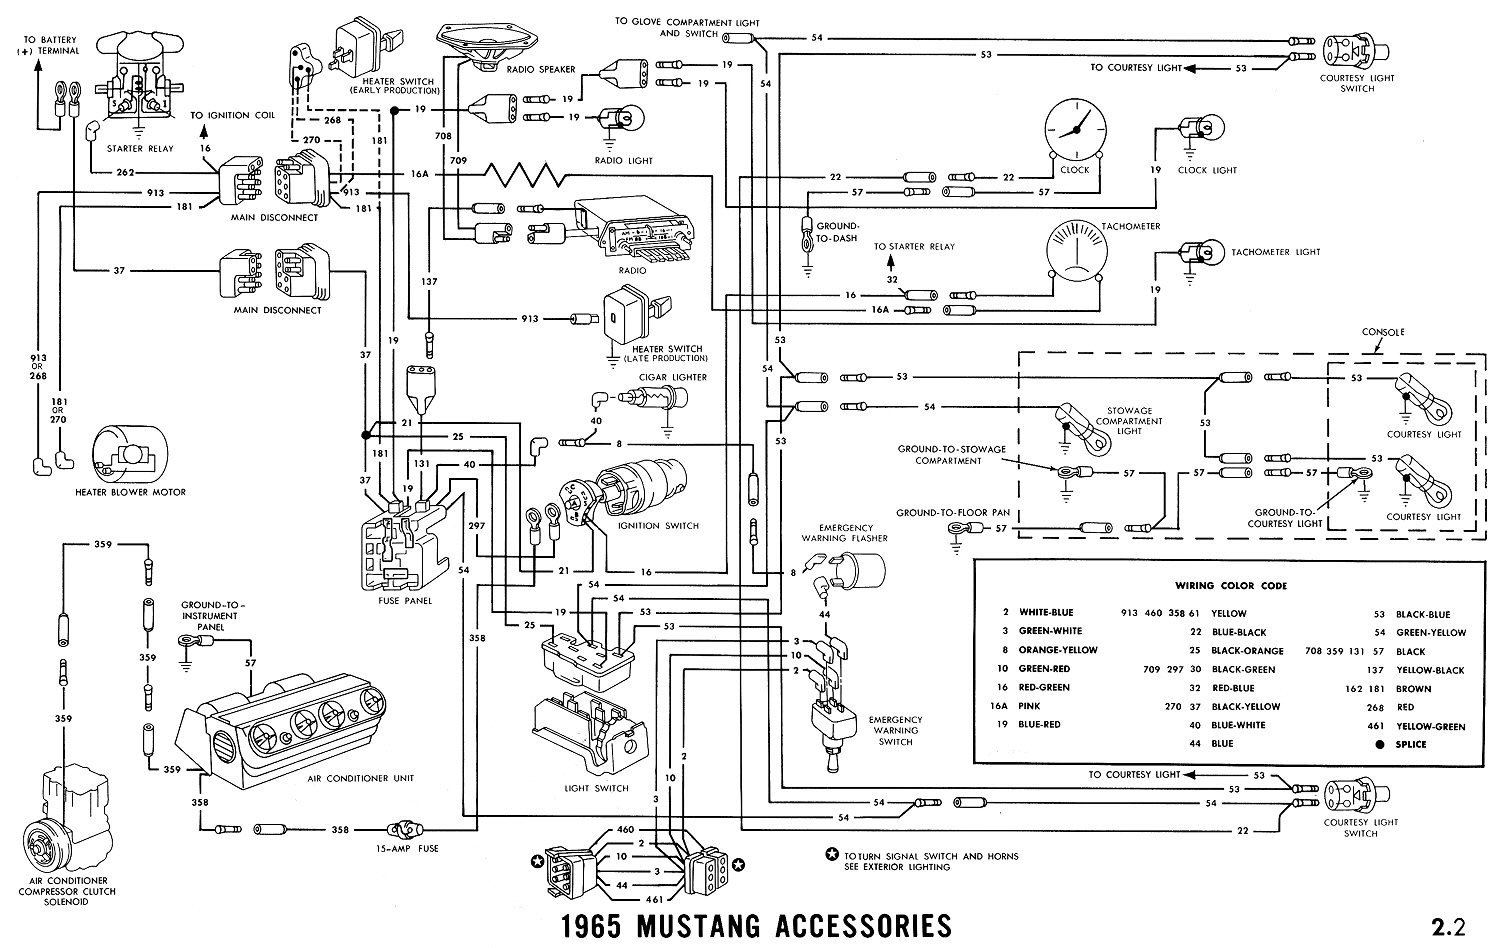 1965i 1970 mustang mach 1 wiring diagram 1970 mustang mach 1 fuse box 1969 mustang wiring diagram online at gsmx.co